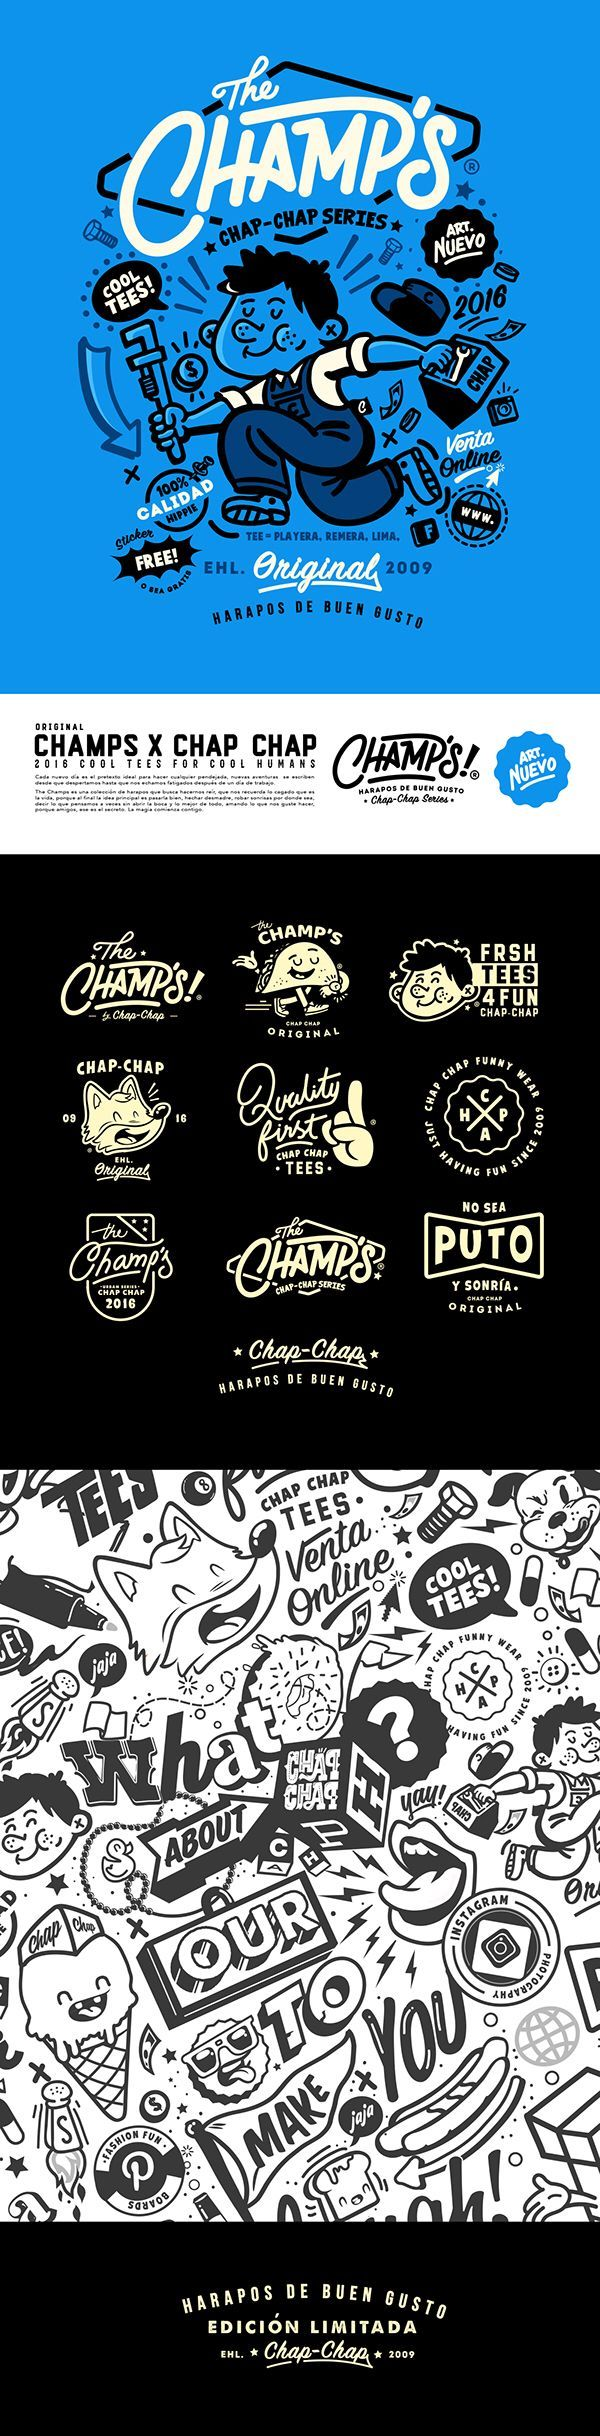 The Champs logo. Funky, playful and authentic. | Cafe advertising | Restaurant Branding | Visual Identity | Hospitality design | Menu design | Ideas Logo | Hospitality Branding | Brand Design | Coffee shop branding | Restaurant Marketing | Coffee shop | Campaign restaurant | Campaign Café | Café logo | Hospitality Logo | Restaurant Logo | Hotel Logo | Food logo